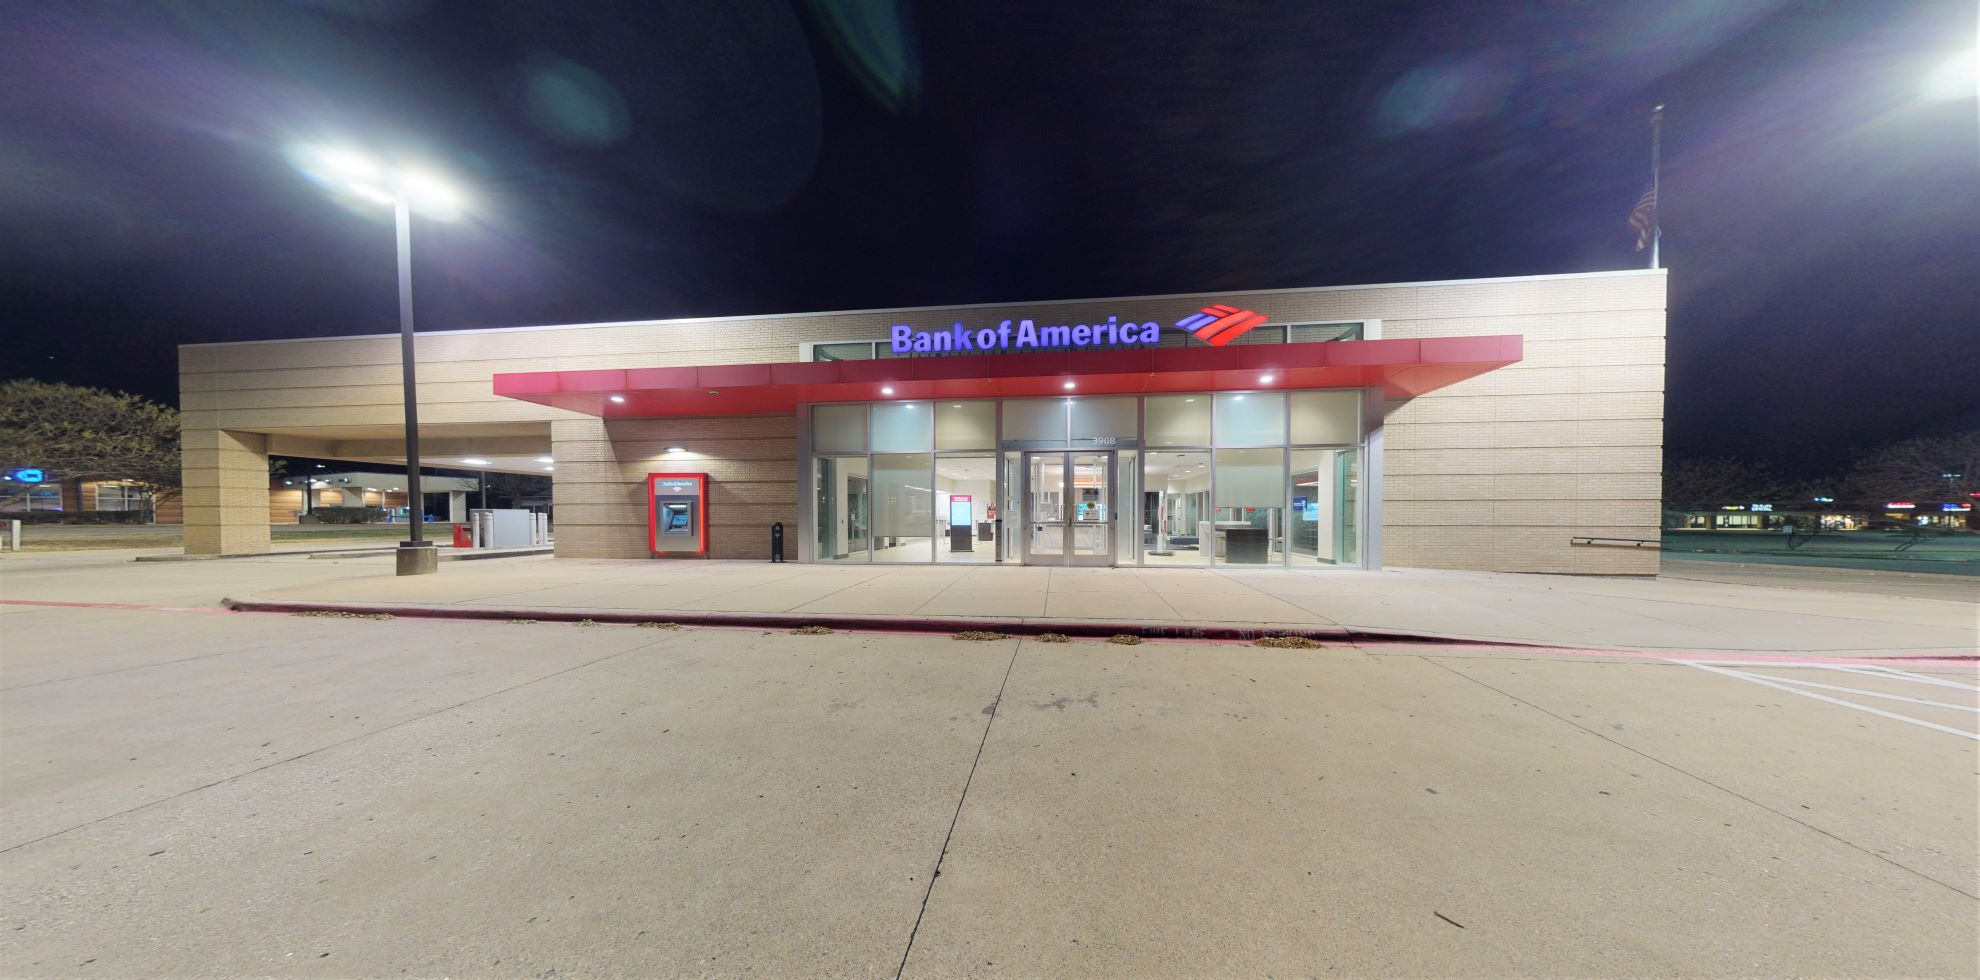 Bank of America financial center with drive-thru ATM and teller | 3908 Glade Rd, Colleyville, TX 76034